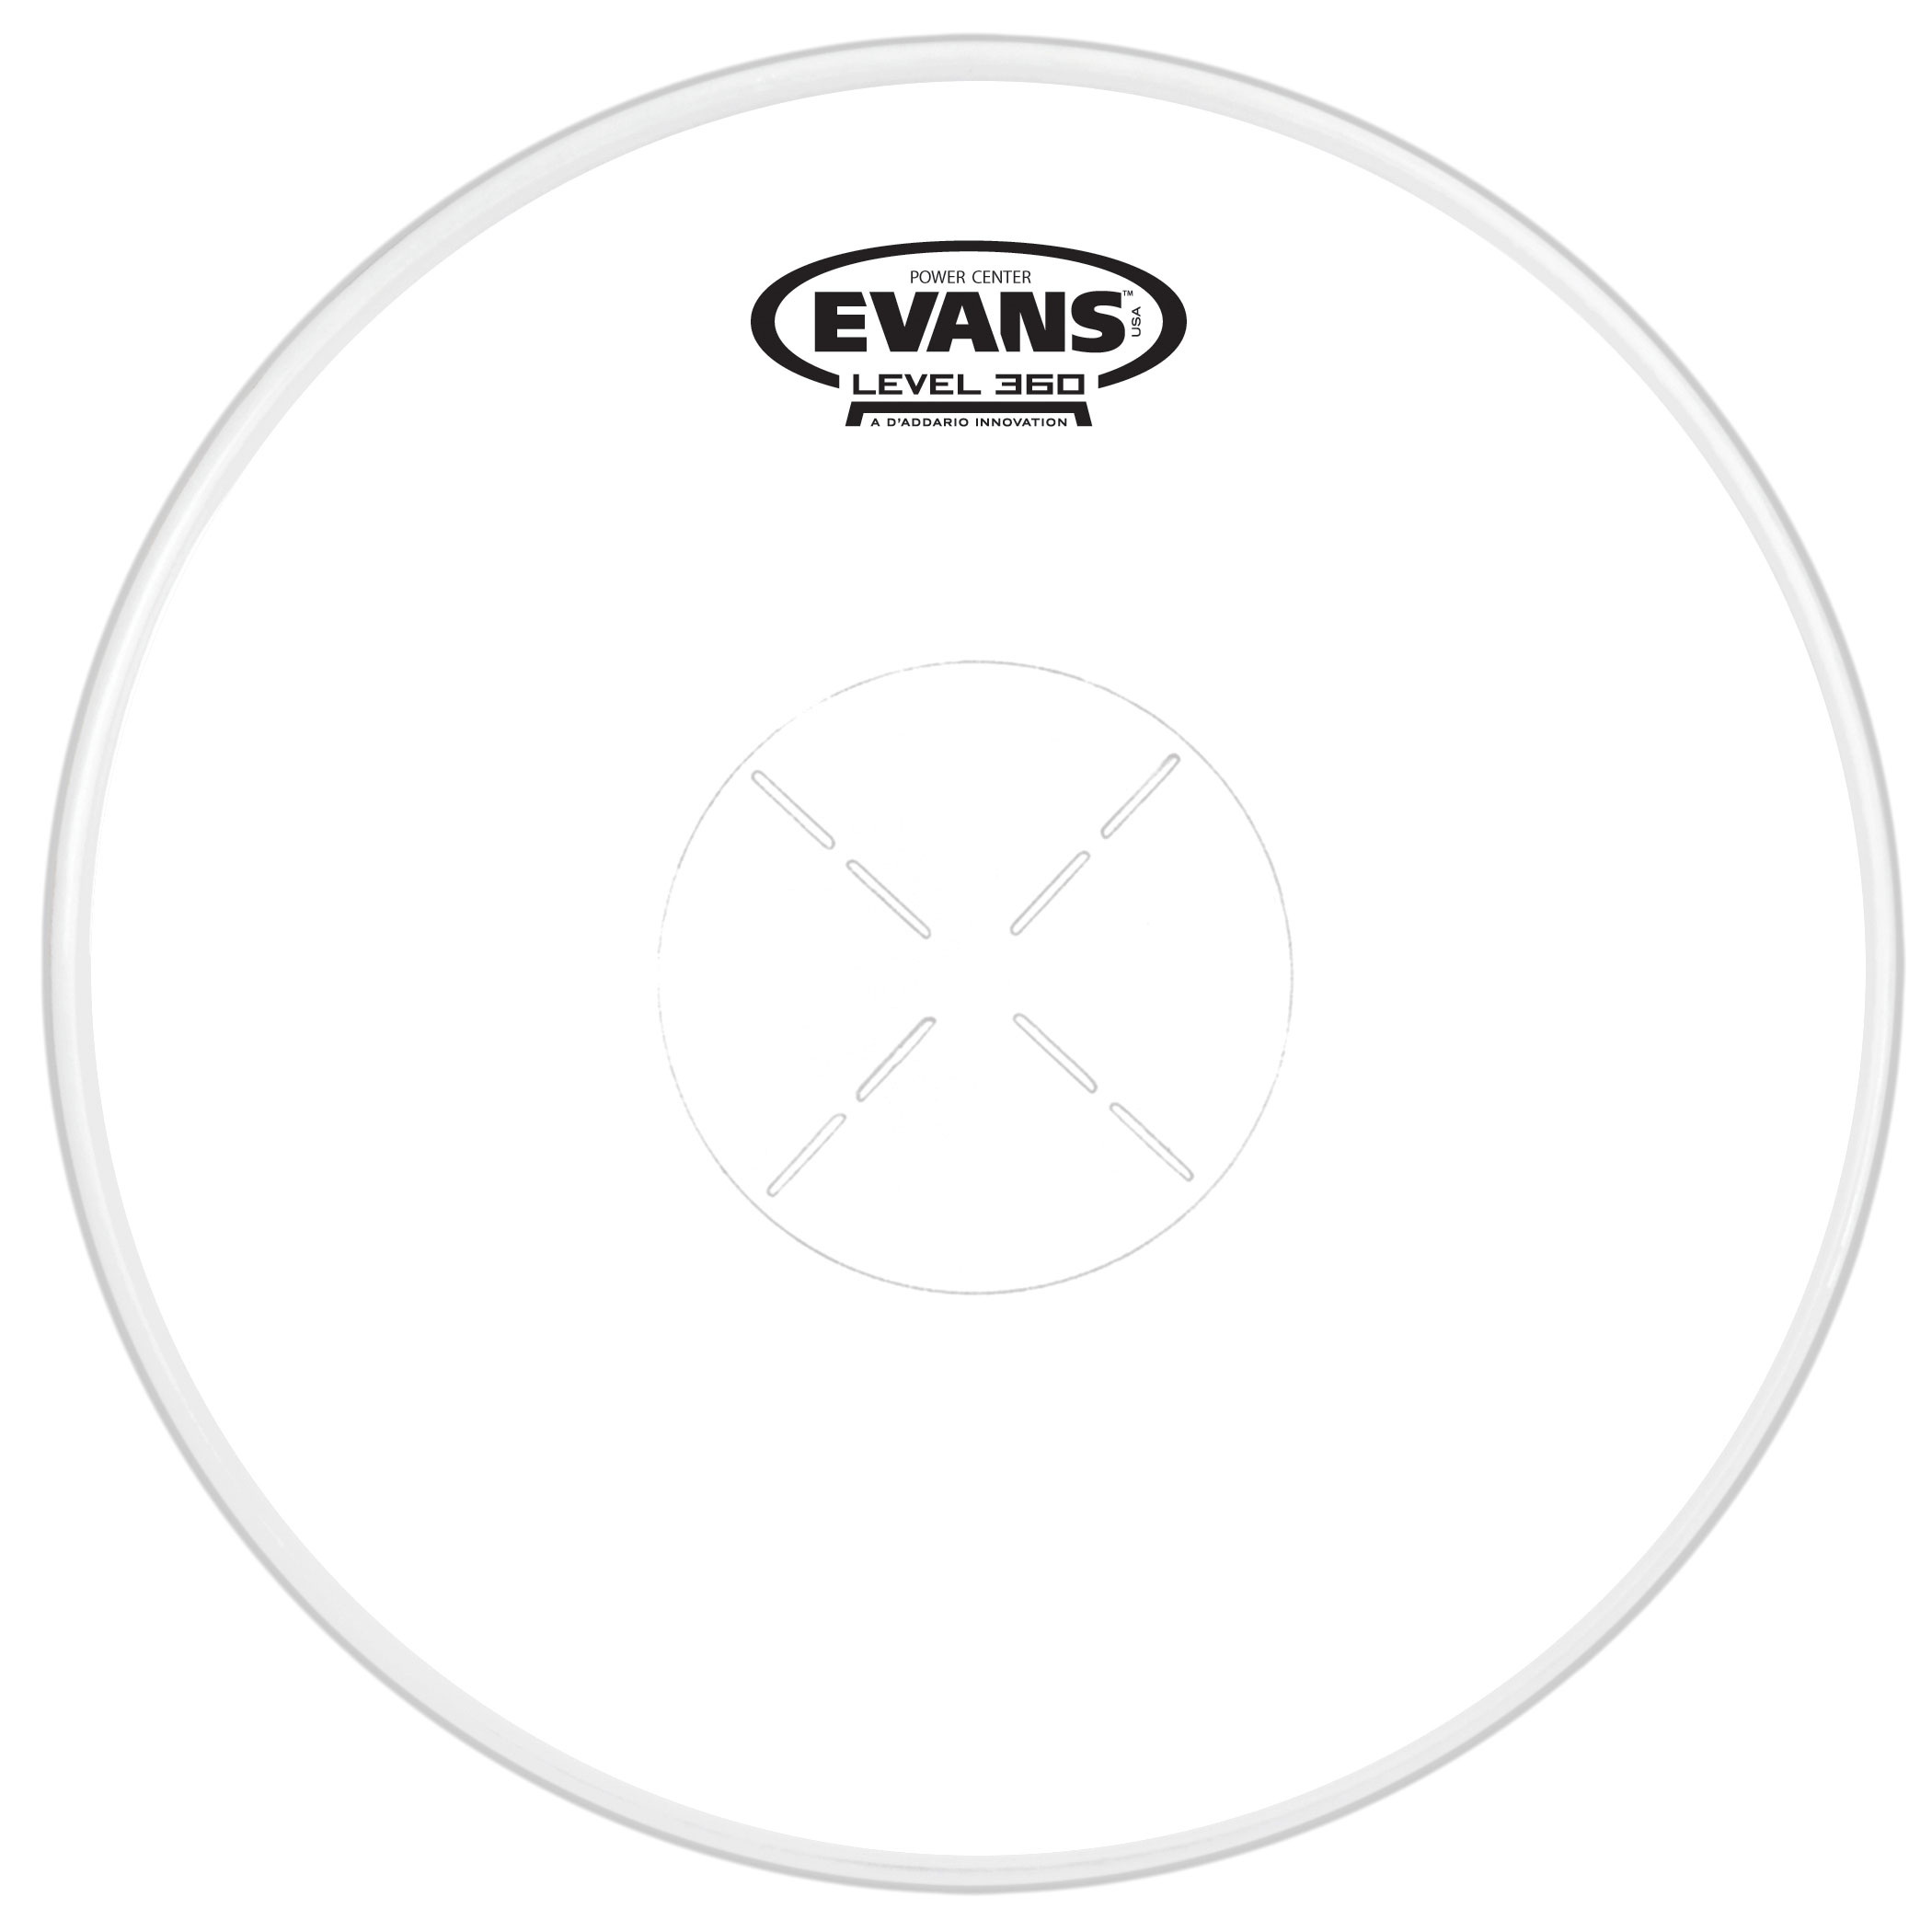 "Evans 13"" Power Center Snare Top Head"